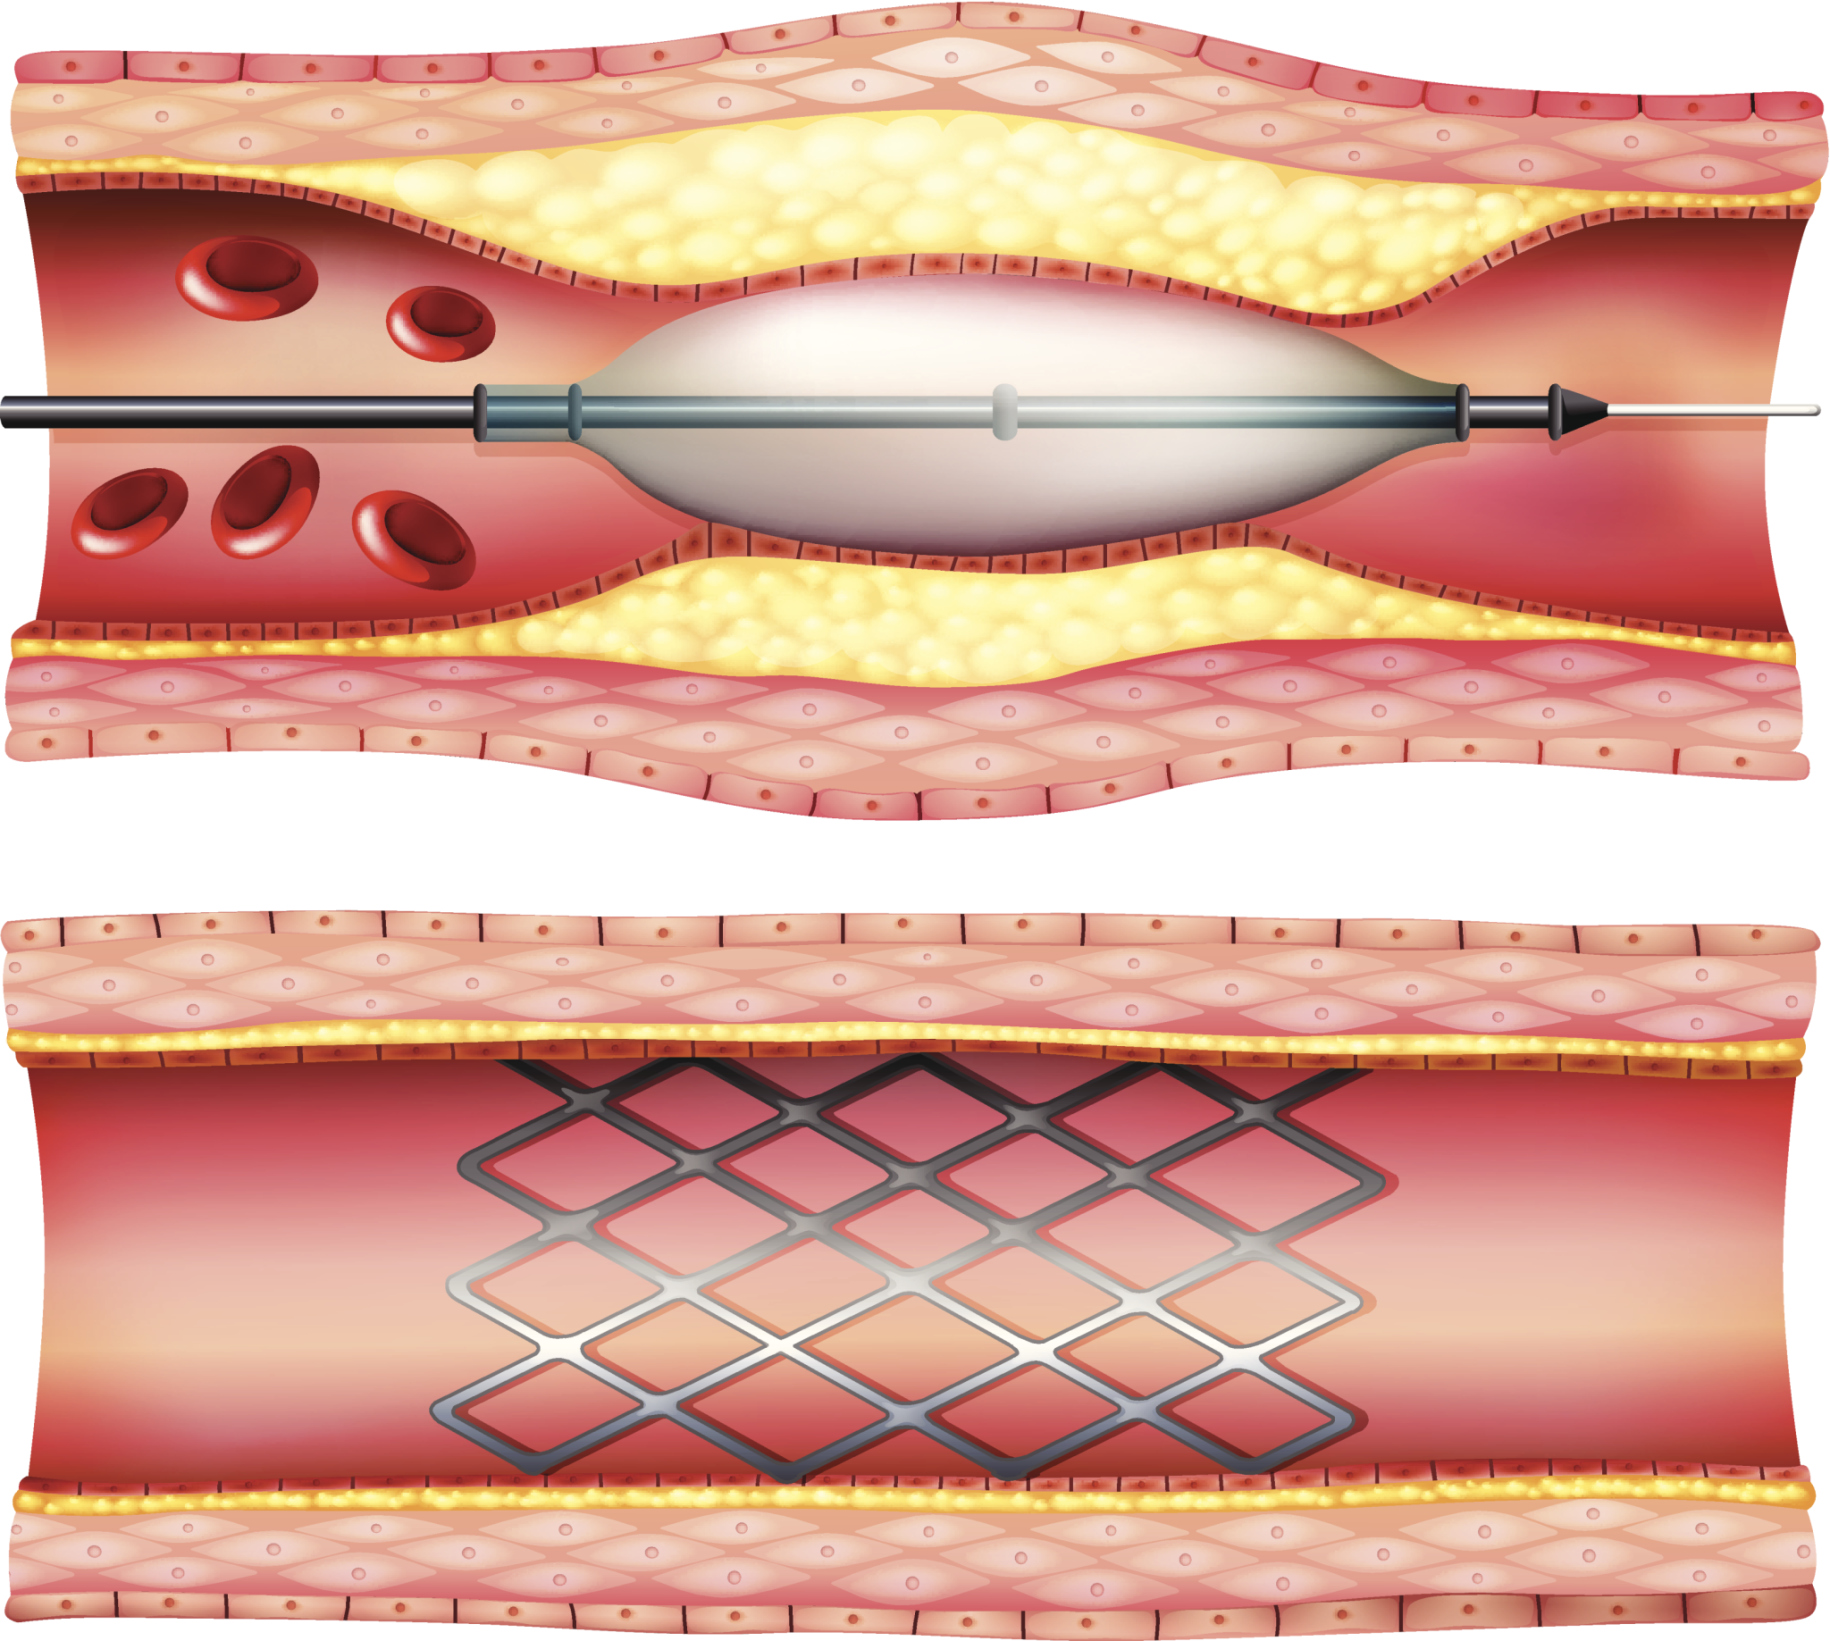 Interventional Cardiology A Look Back At 4 Decades Of Practice Changing Innovation